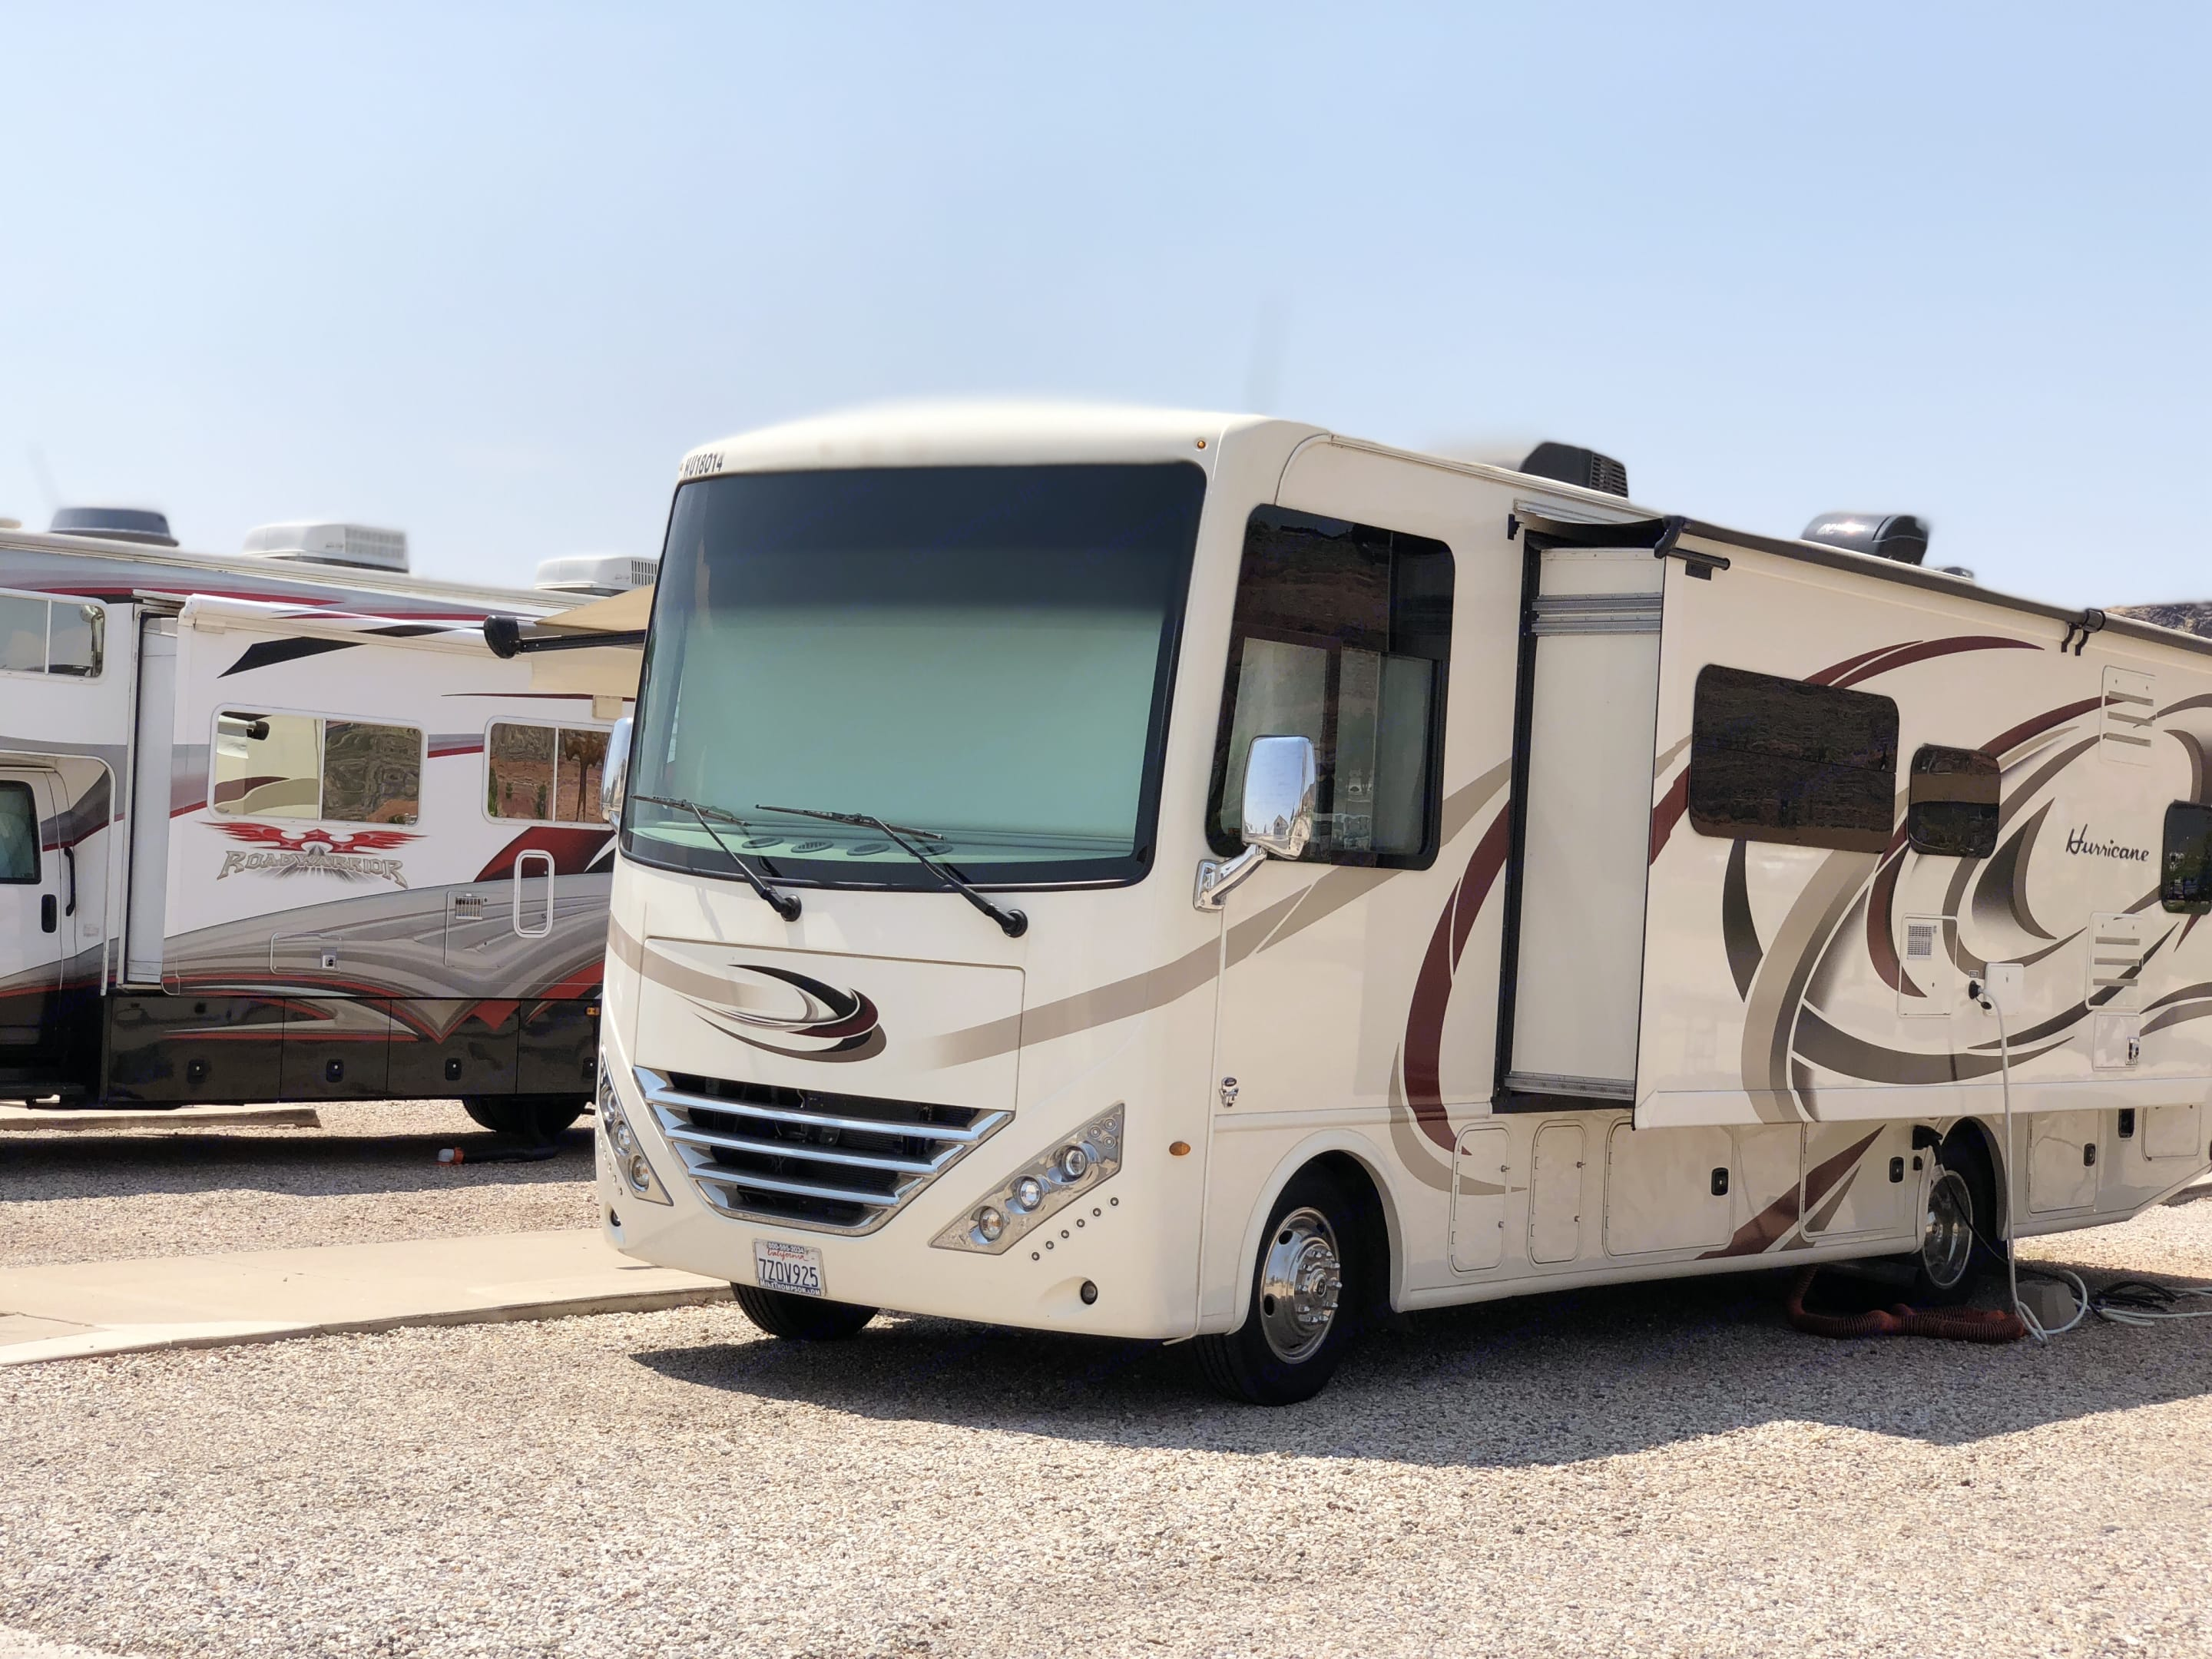 Our beautiful RV prior to wrapping. Thor Motor Coach Hurricane 2018